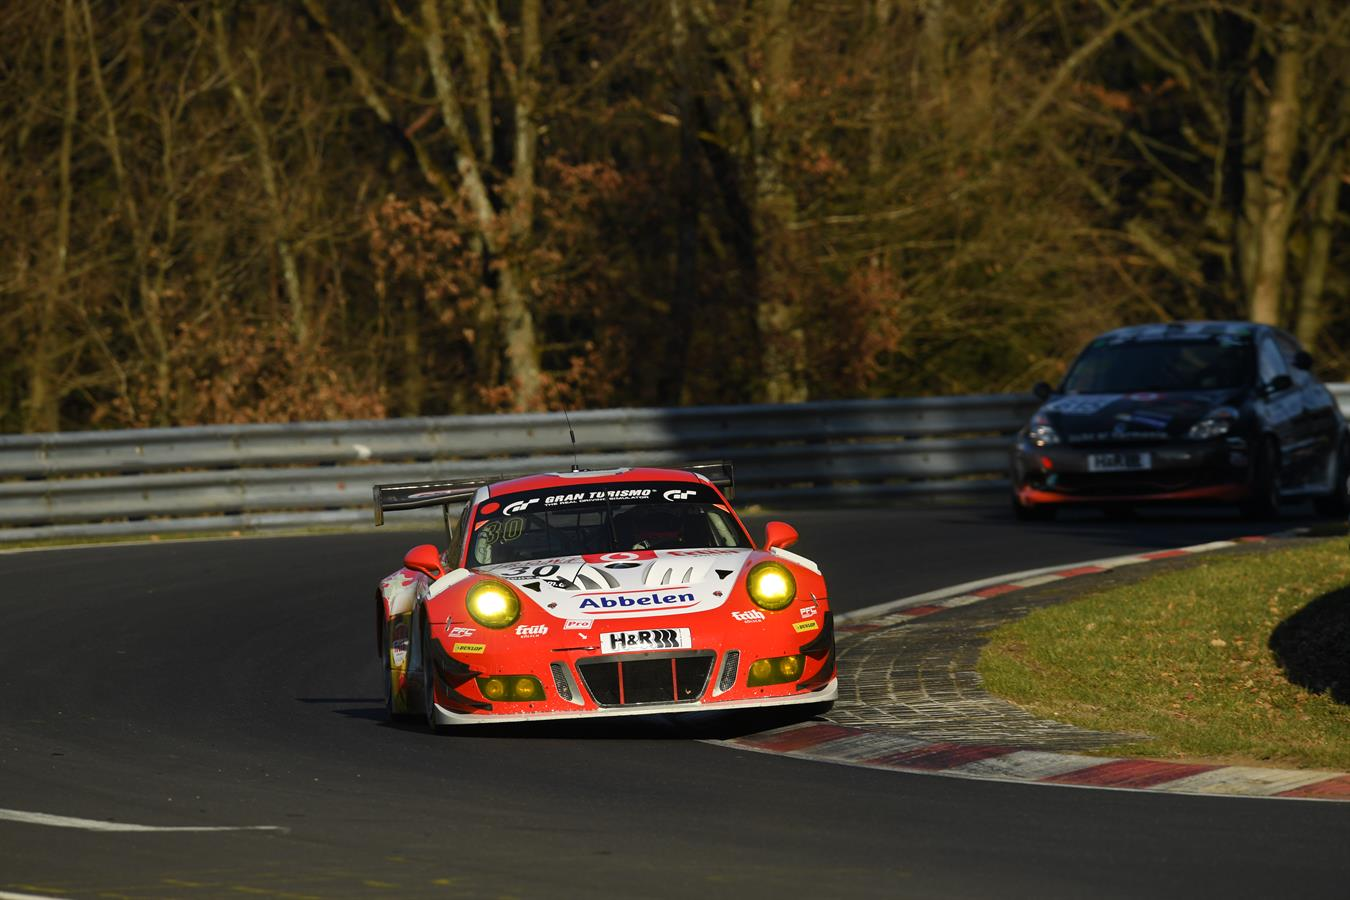 VLN 2018: Race 02 (April 7th)